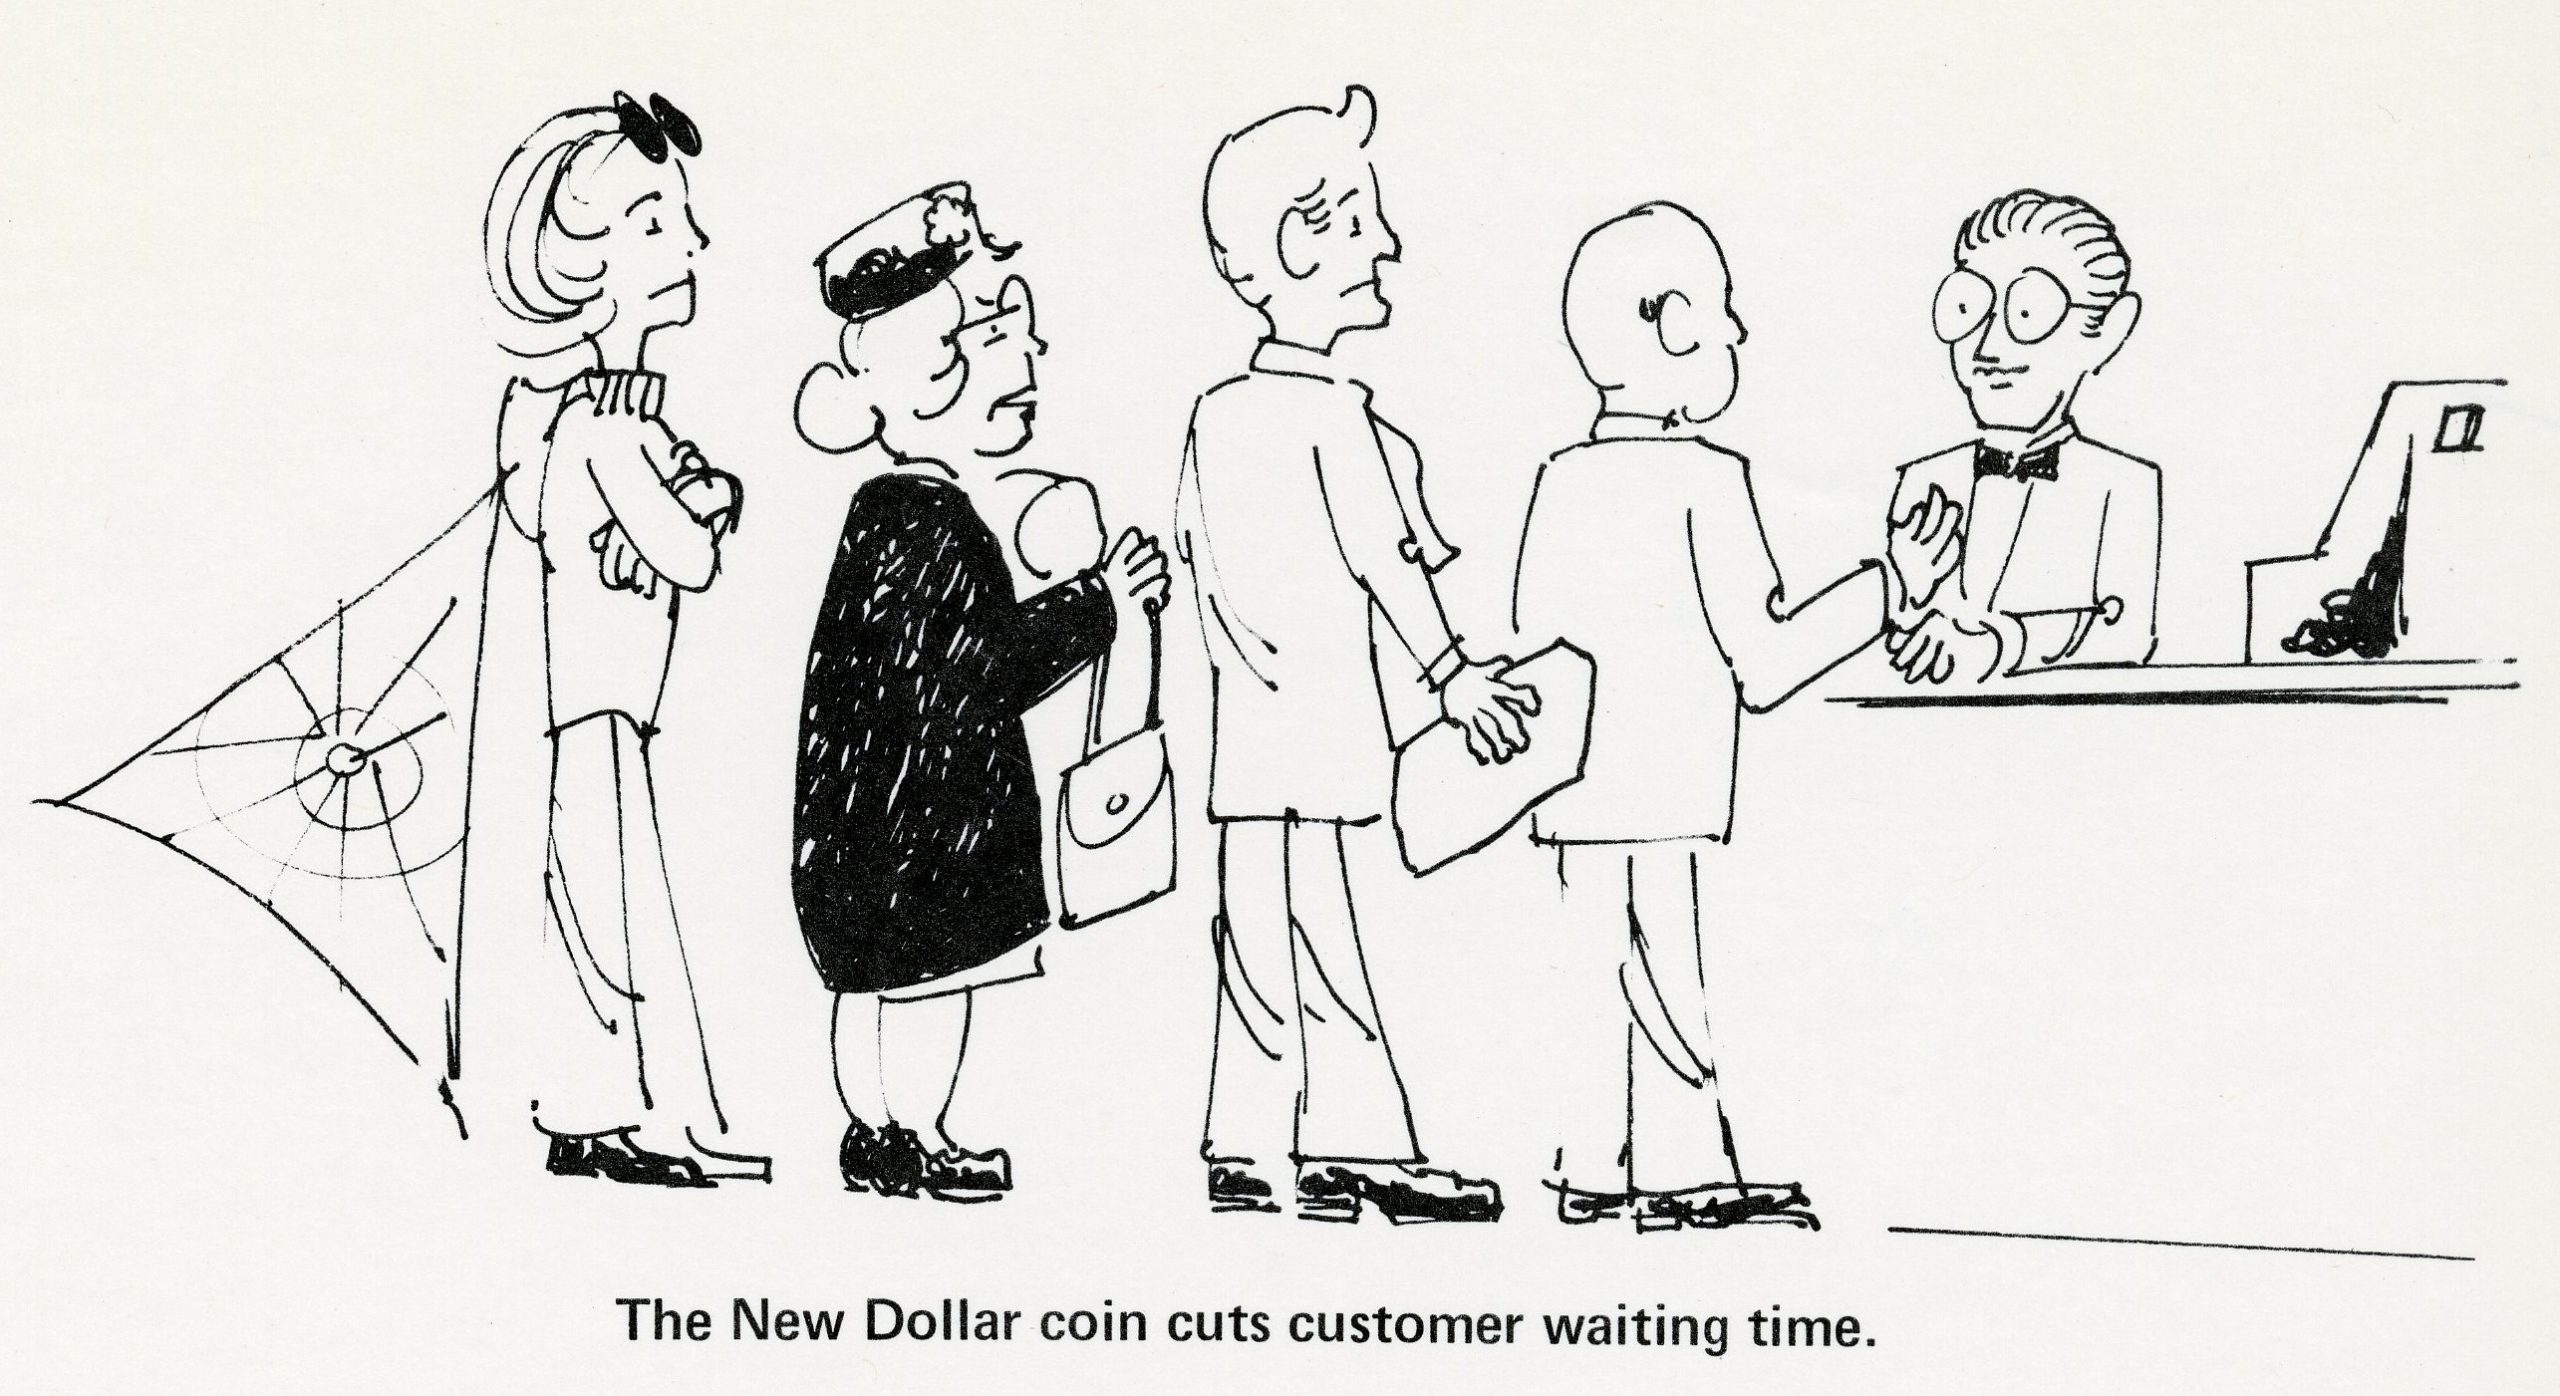 Cartoon of 4 people standing in line, not happy. Caption: The New Dollar coin cuts customer waiting time